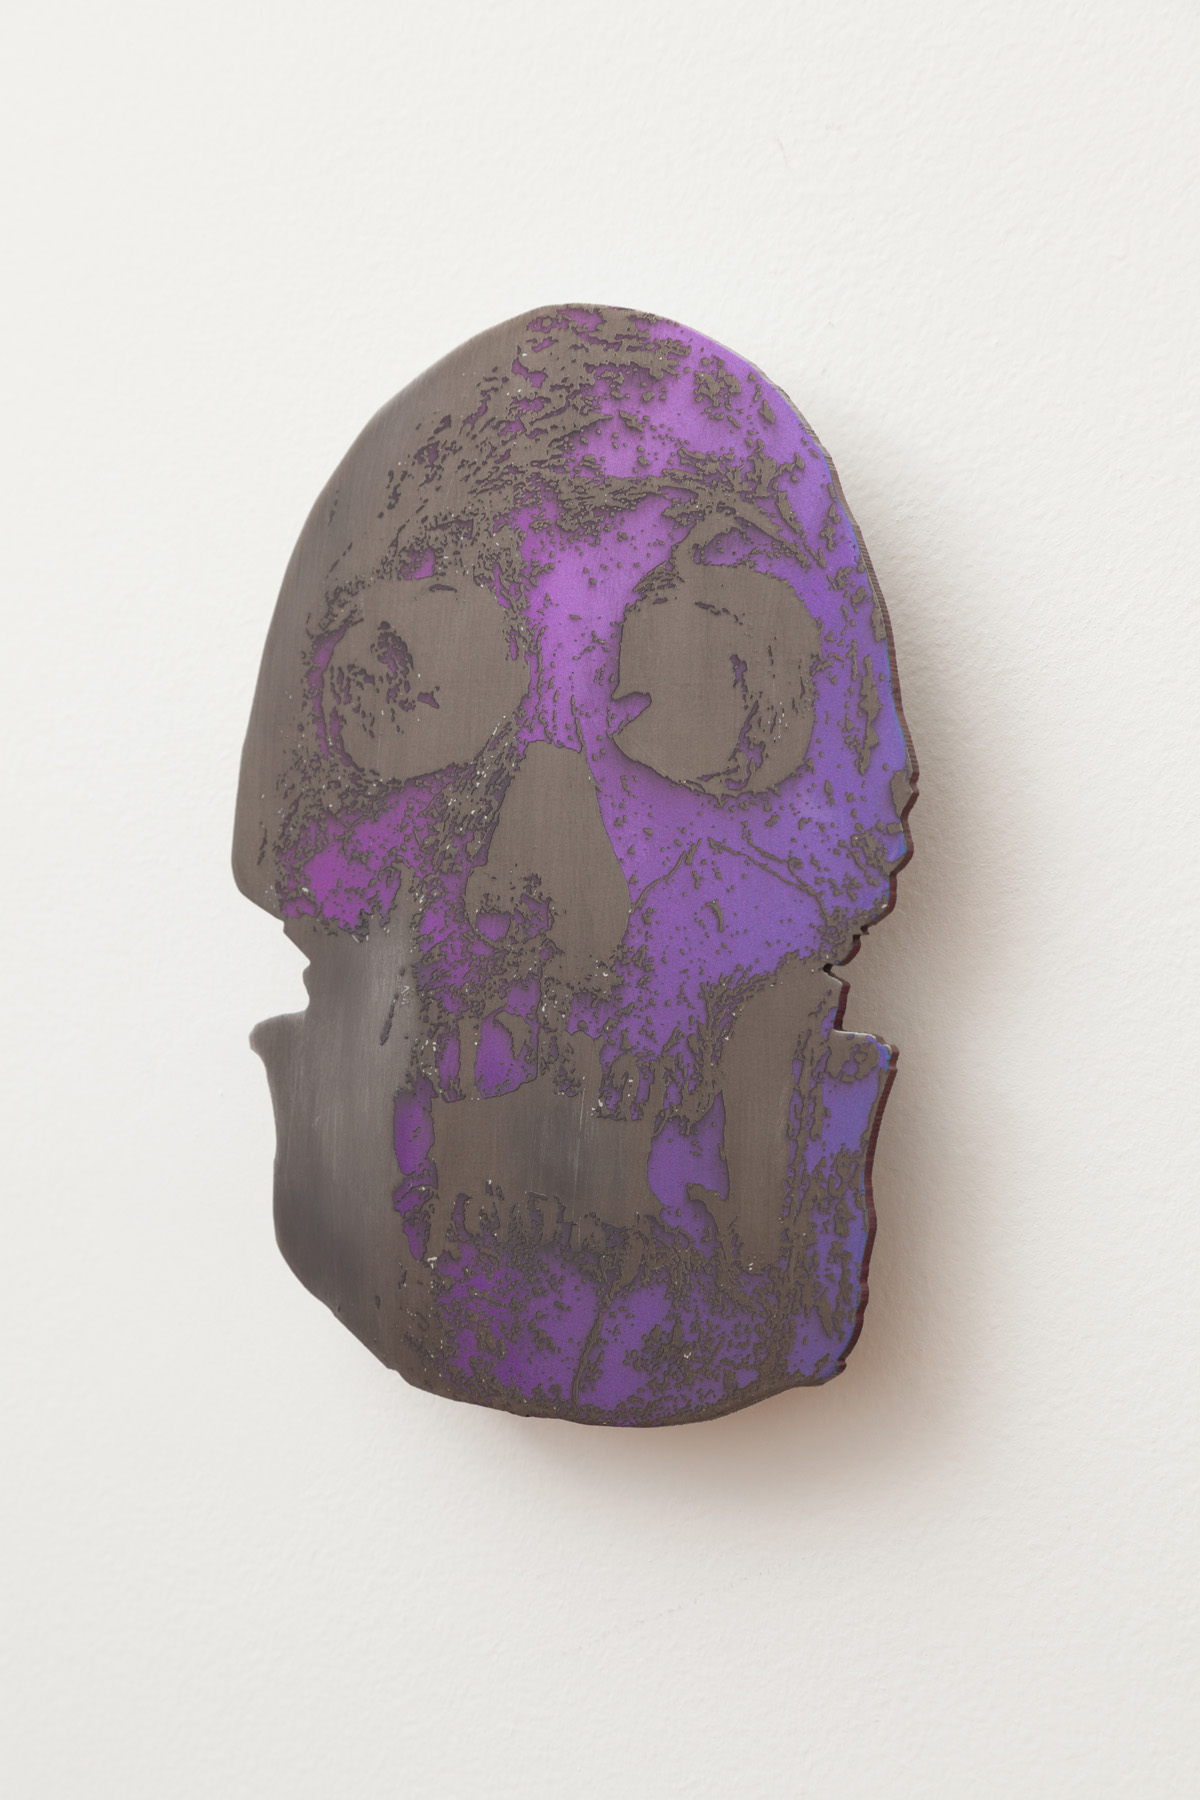 """<p><span class=""""name"""">Dmitri Obergfell</span><br><em>Dmanisi skull</em>(view 2)<br><a class='inquire' href='mailto:info@gildargallery.com?subject=Artwork Inquiry DOBE0010&body=I am interested in finding out more about Dmanisi skull by Dmitri Obergfell'>Inquire</a></p>"""